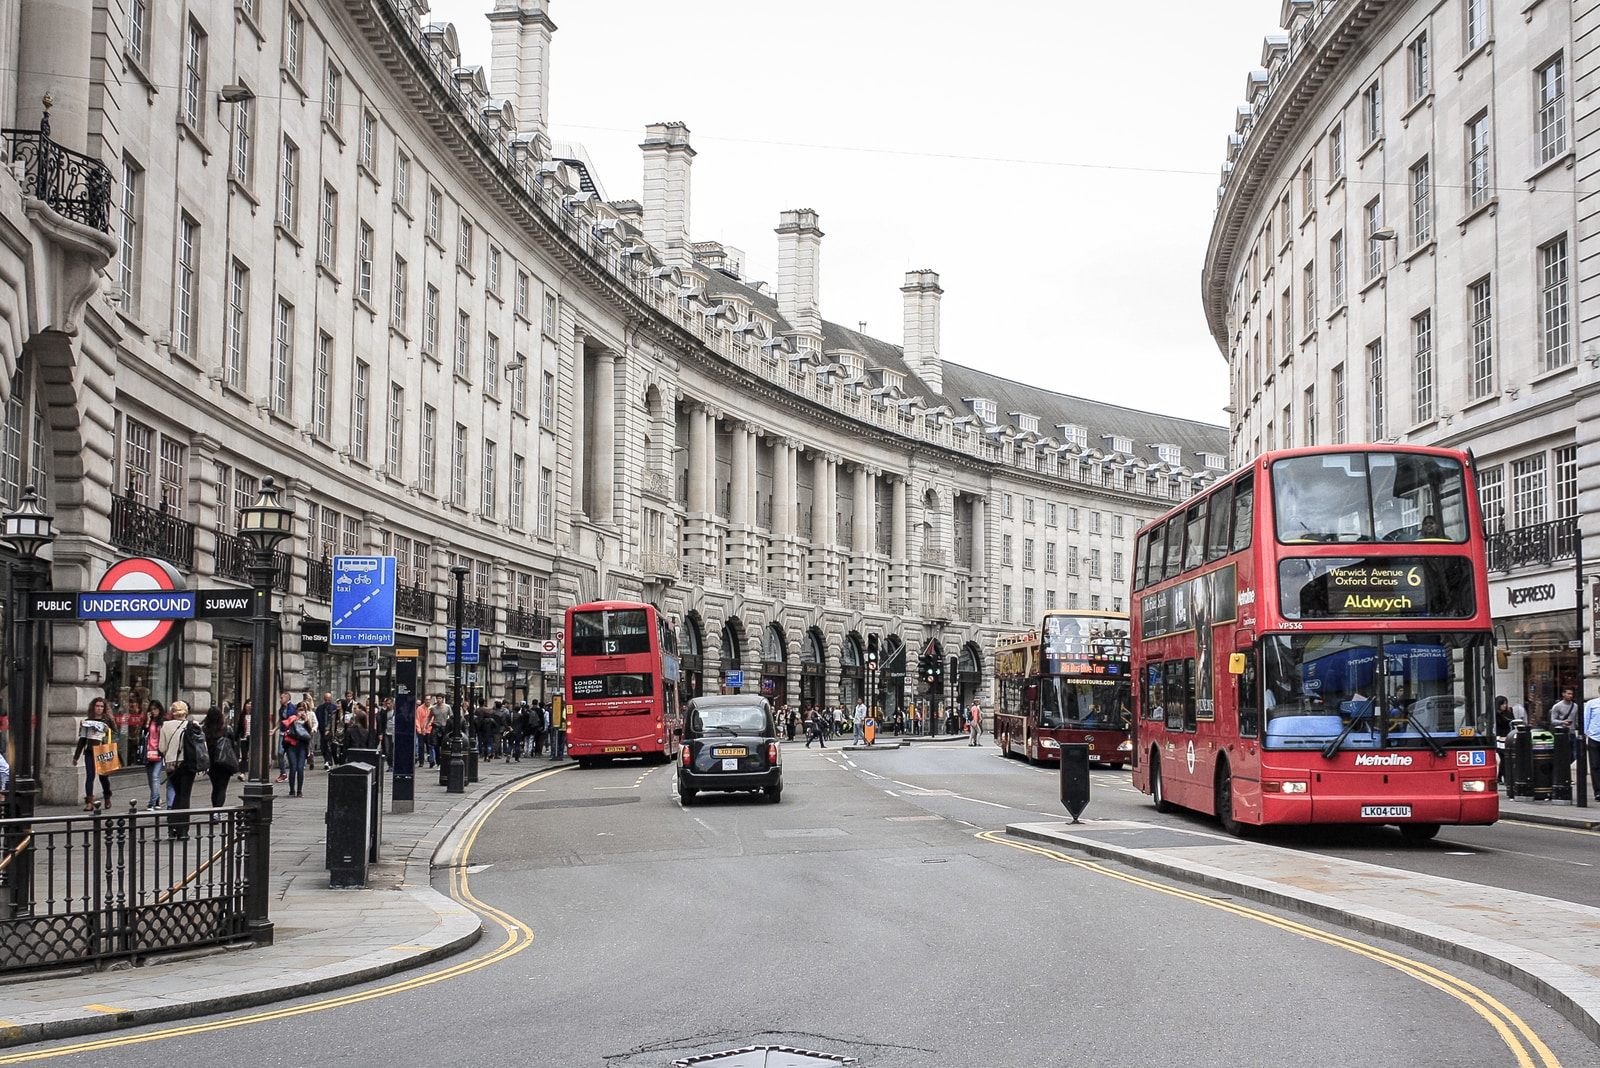 red double decker bus on road near building during daytime